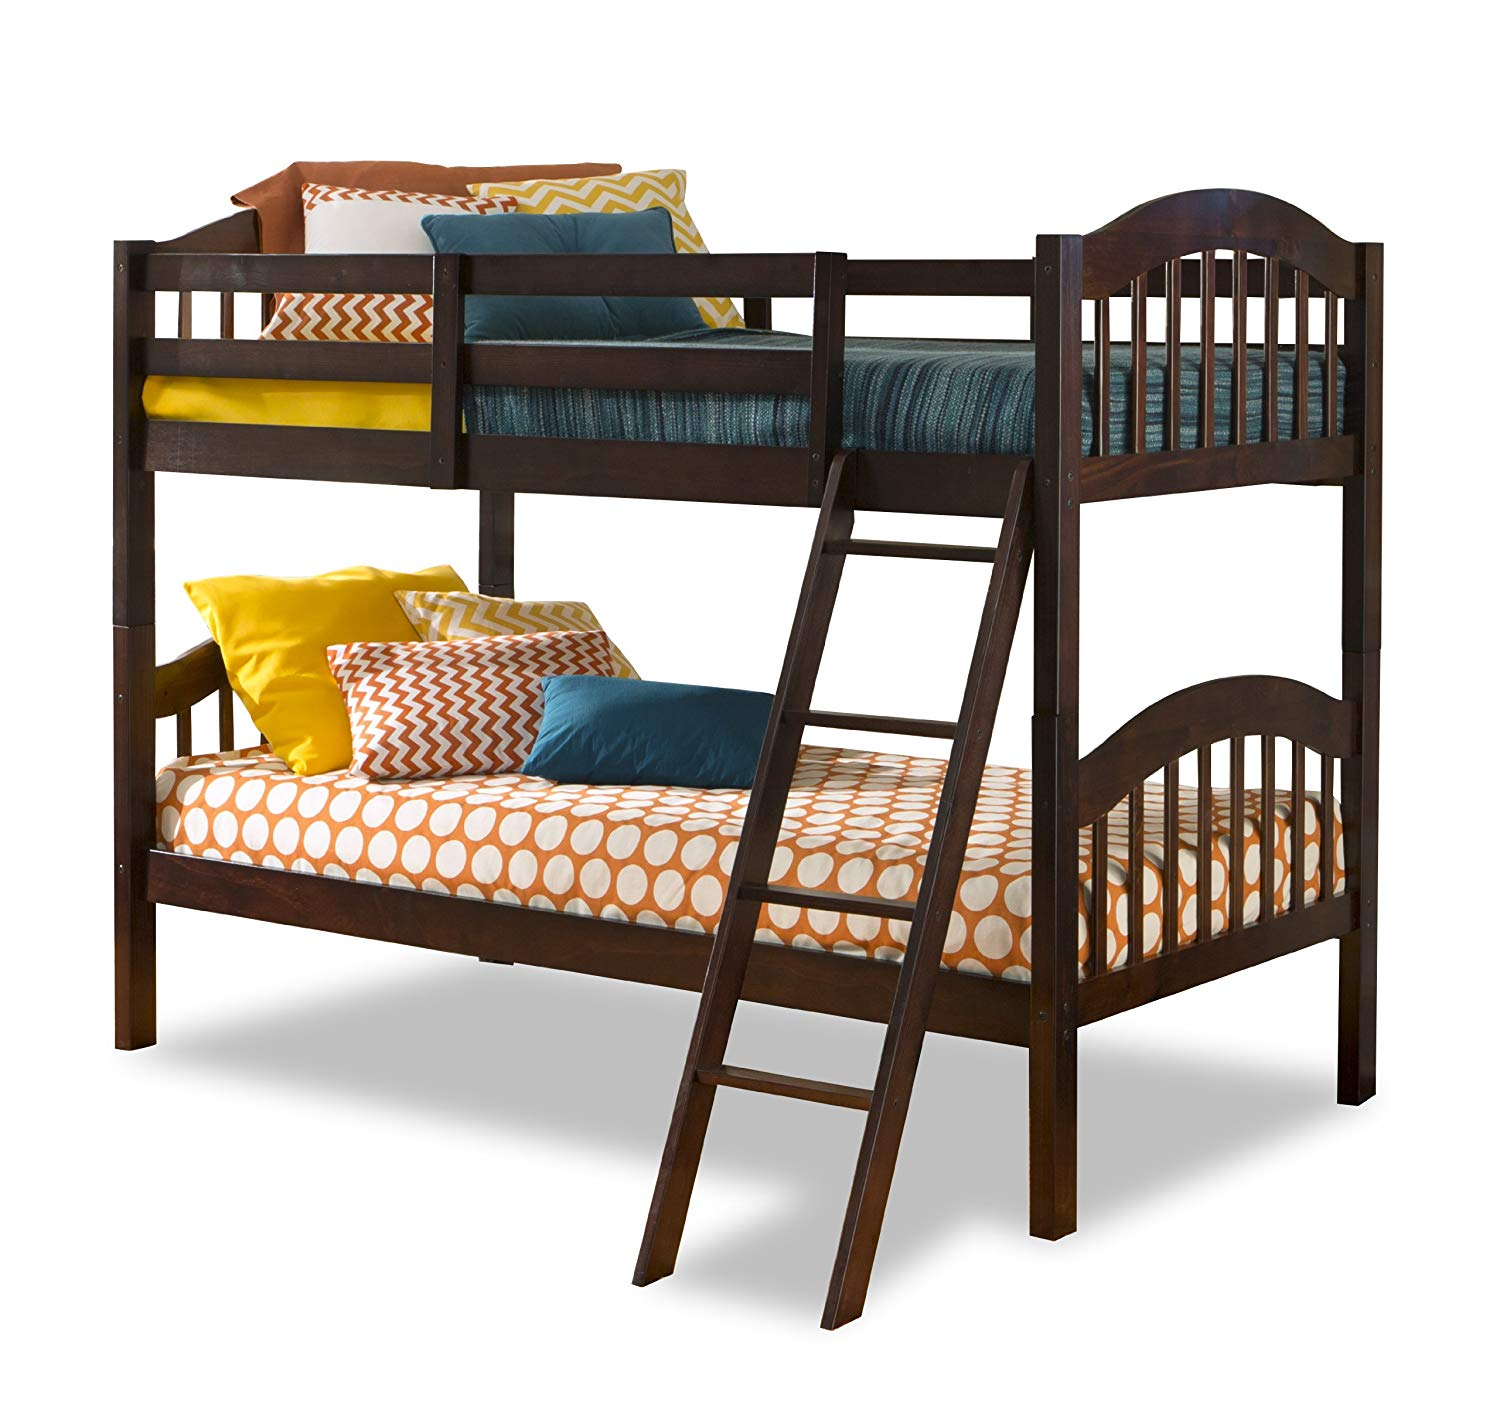 Long Horn Solid Hardwood Twin Bunk Bed, Espresso Twin Bunk Beds for Kids with Ladder and Safety Rail